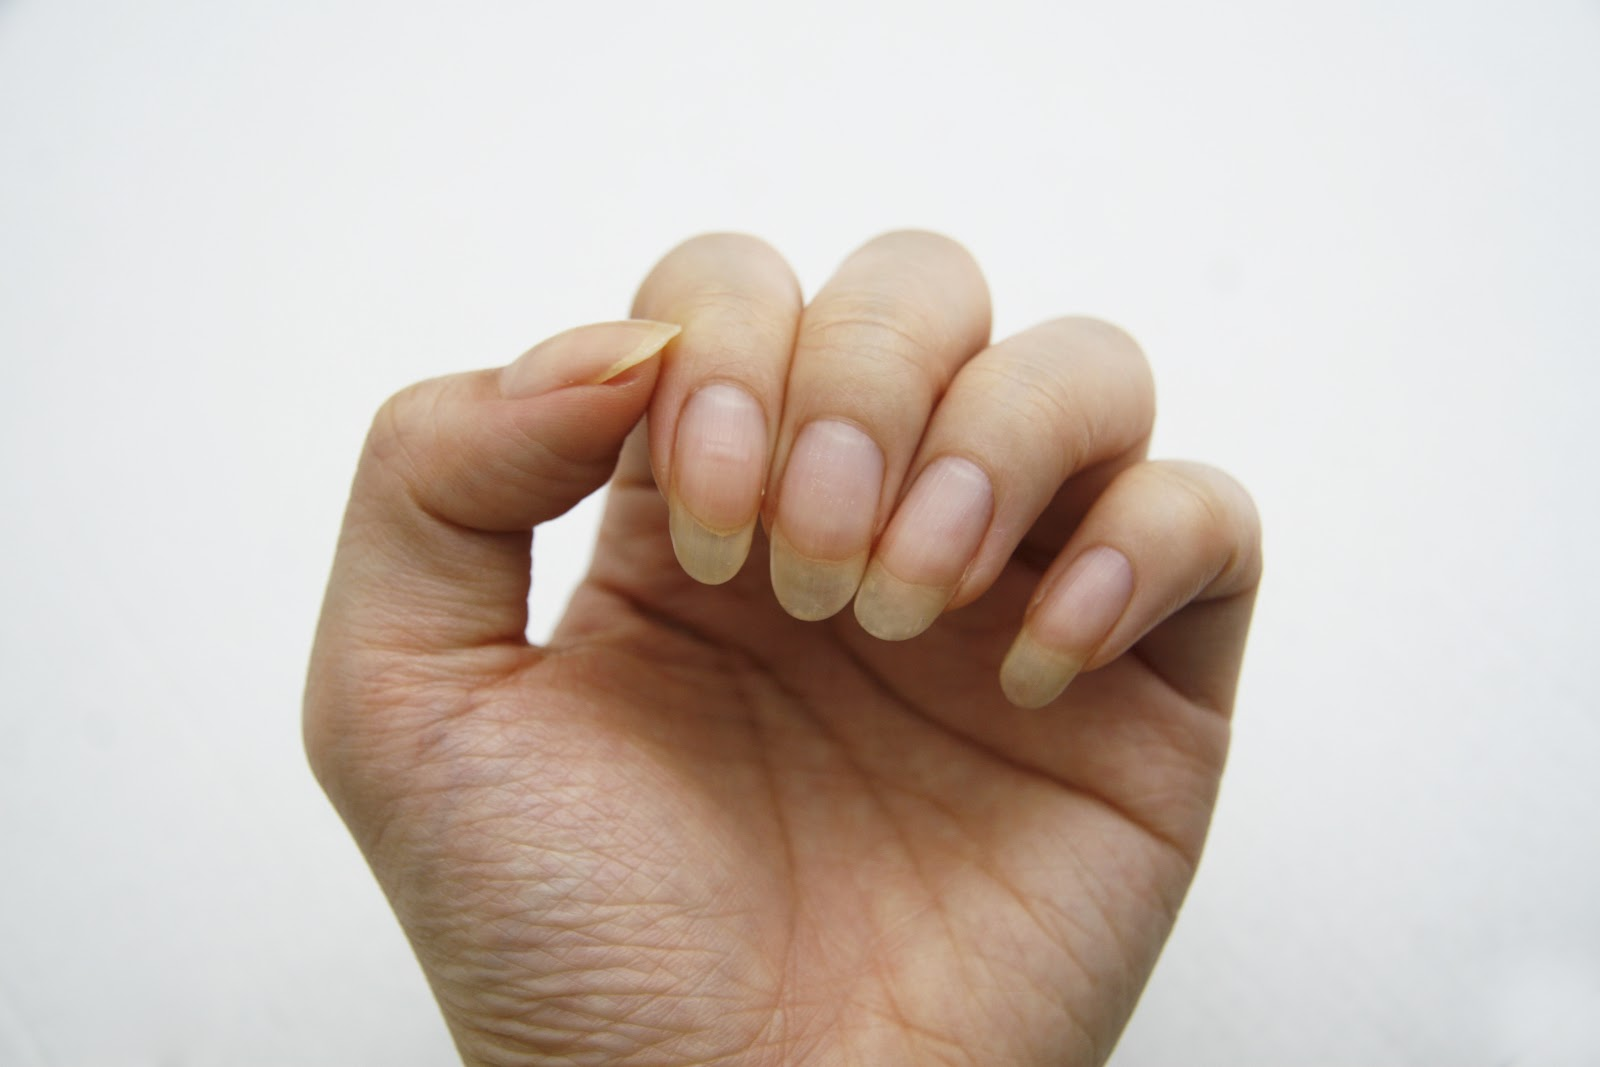 fun size beauty: HOW-TO: Grow and Maintain Long, Healthy Nails